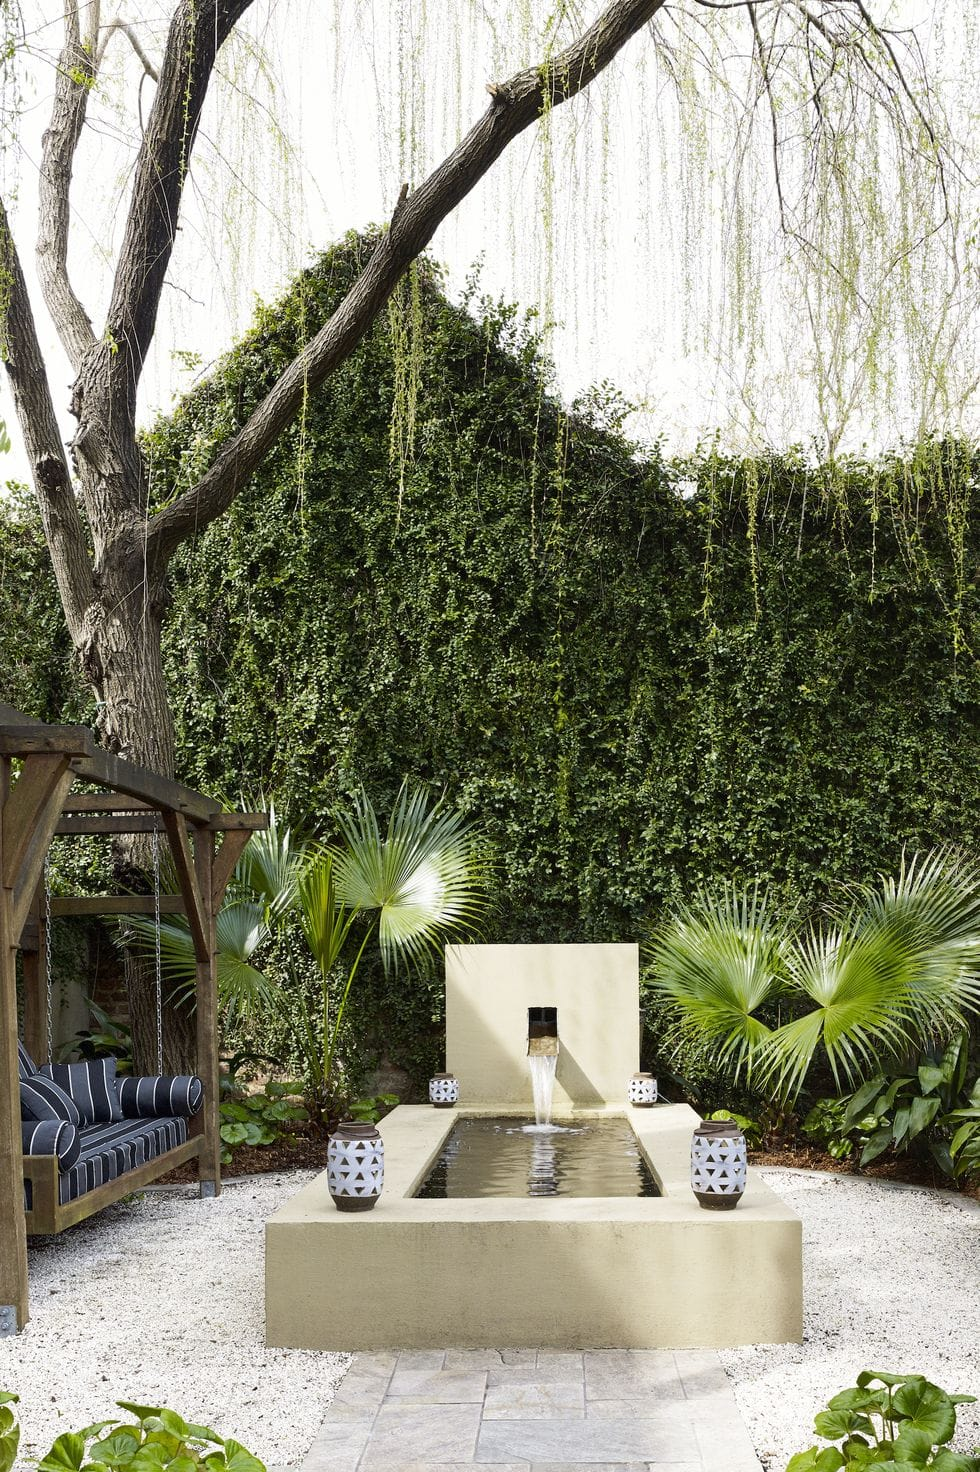 Best backyard landscaping ideas #8